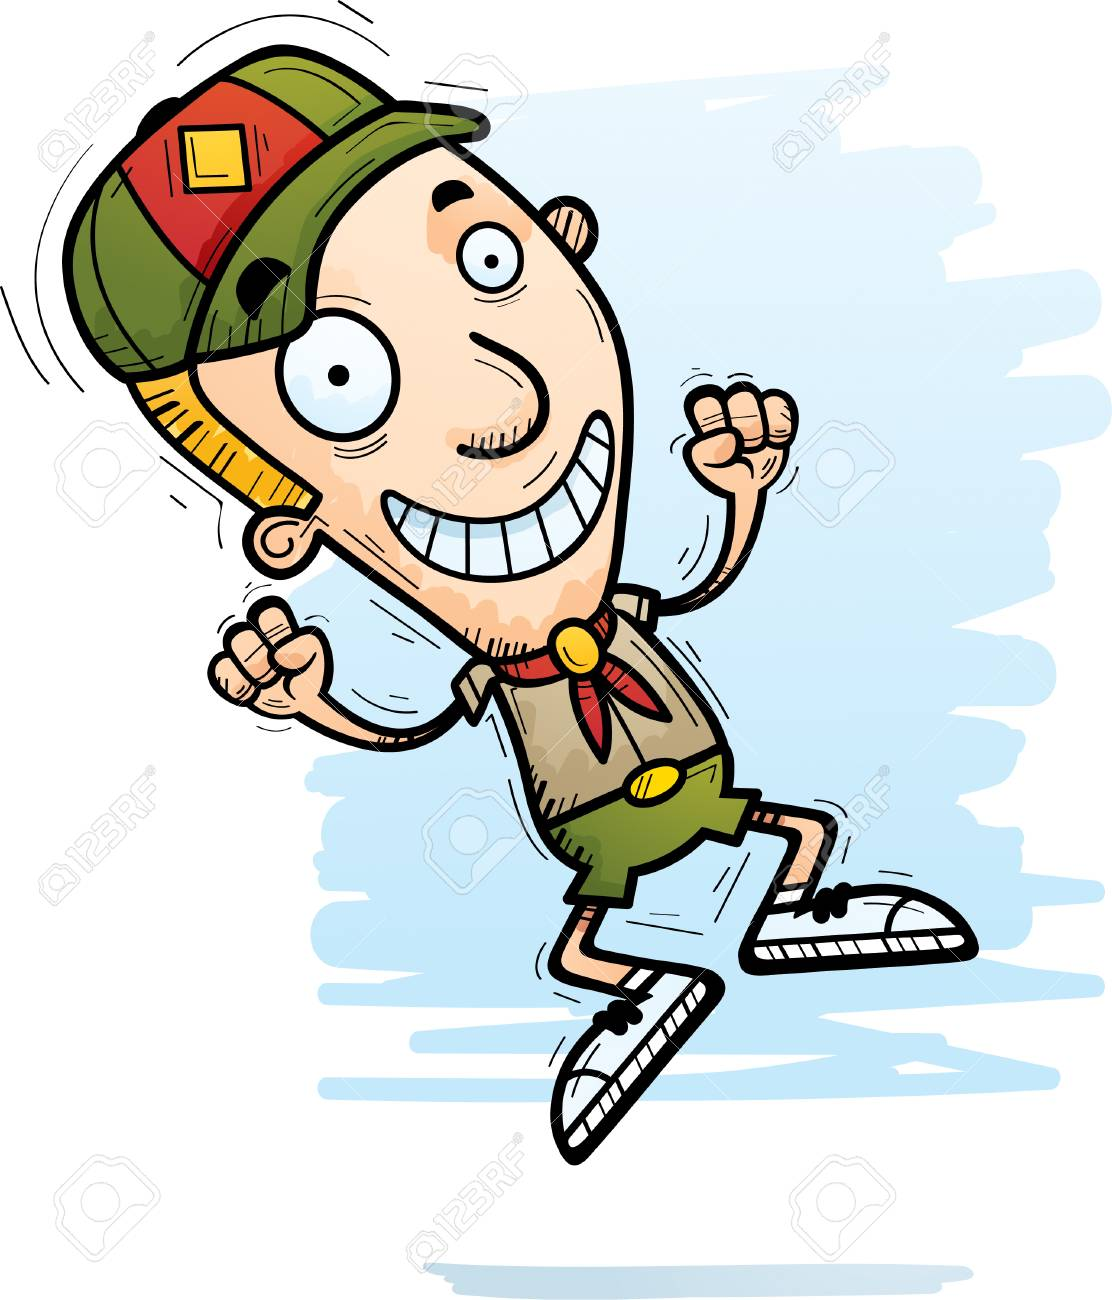 hight resolution of a cartoon illustration of a boy scout jumping stock vector 101954292